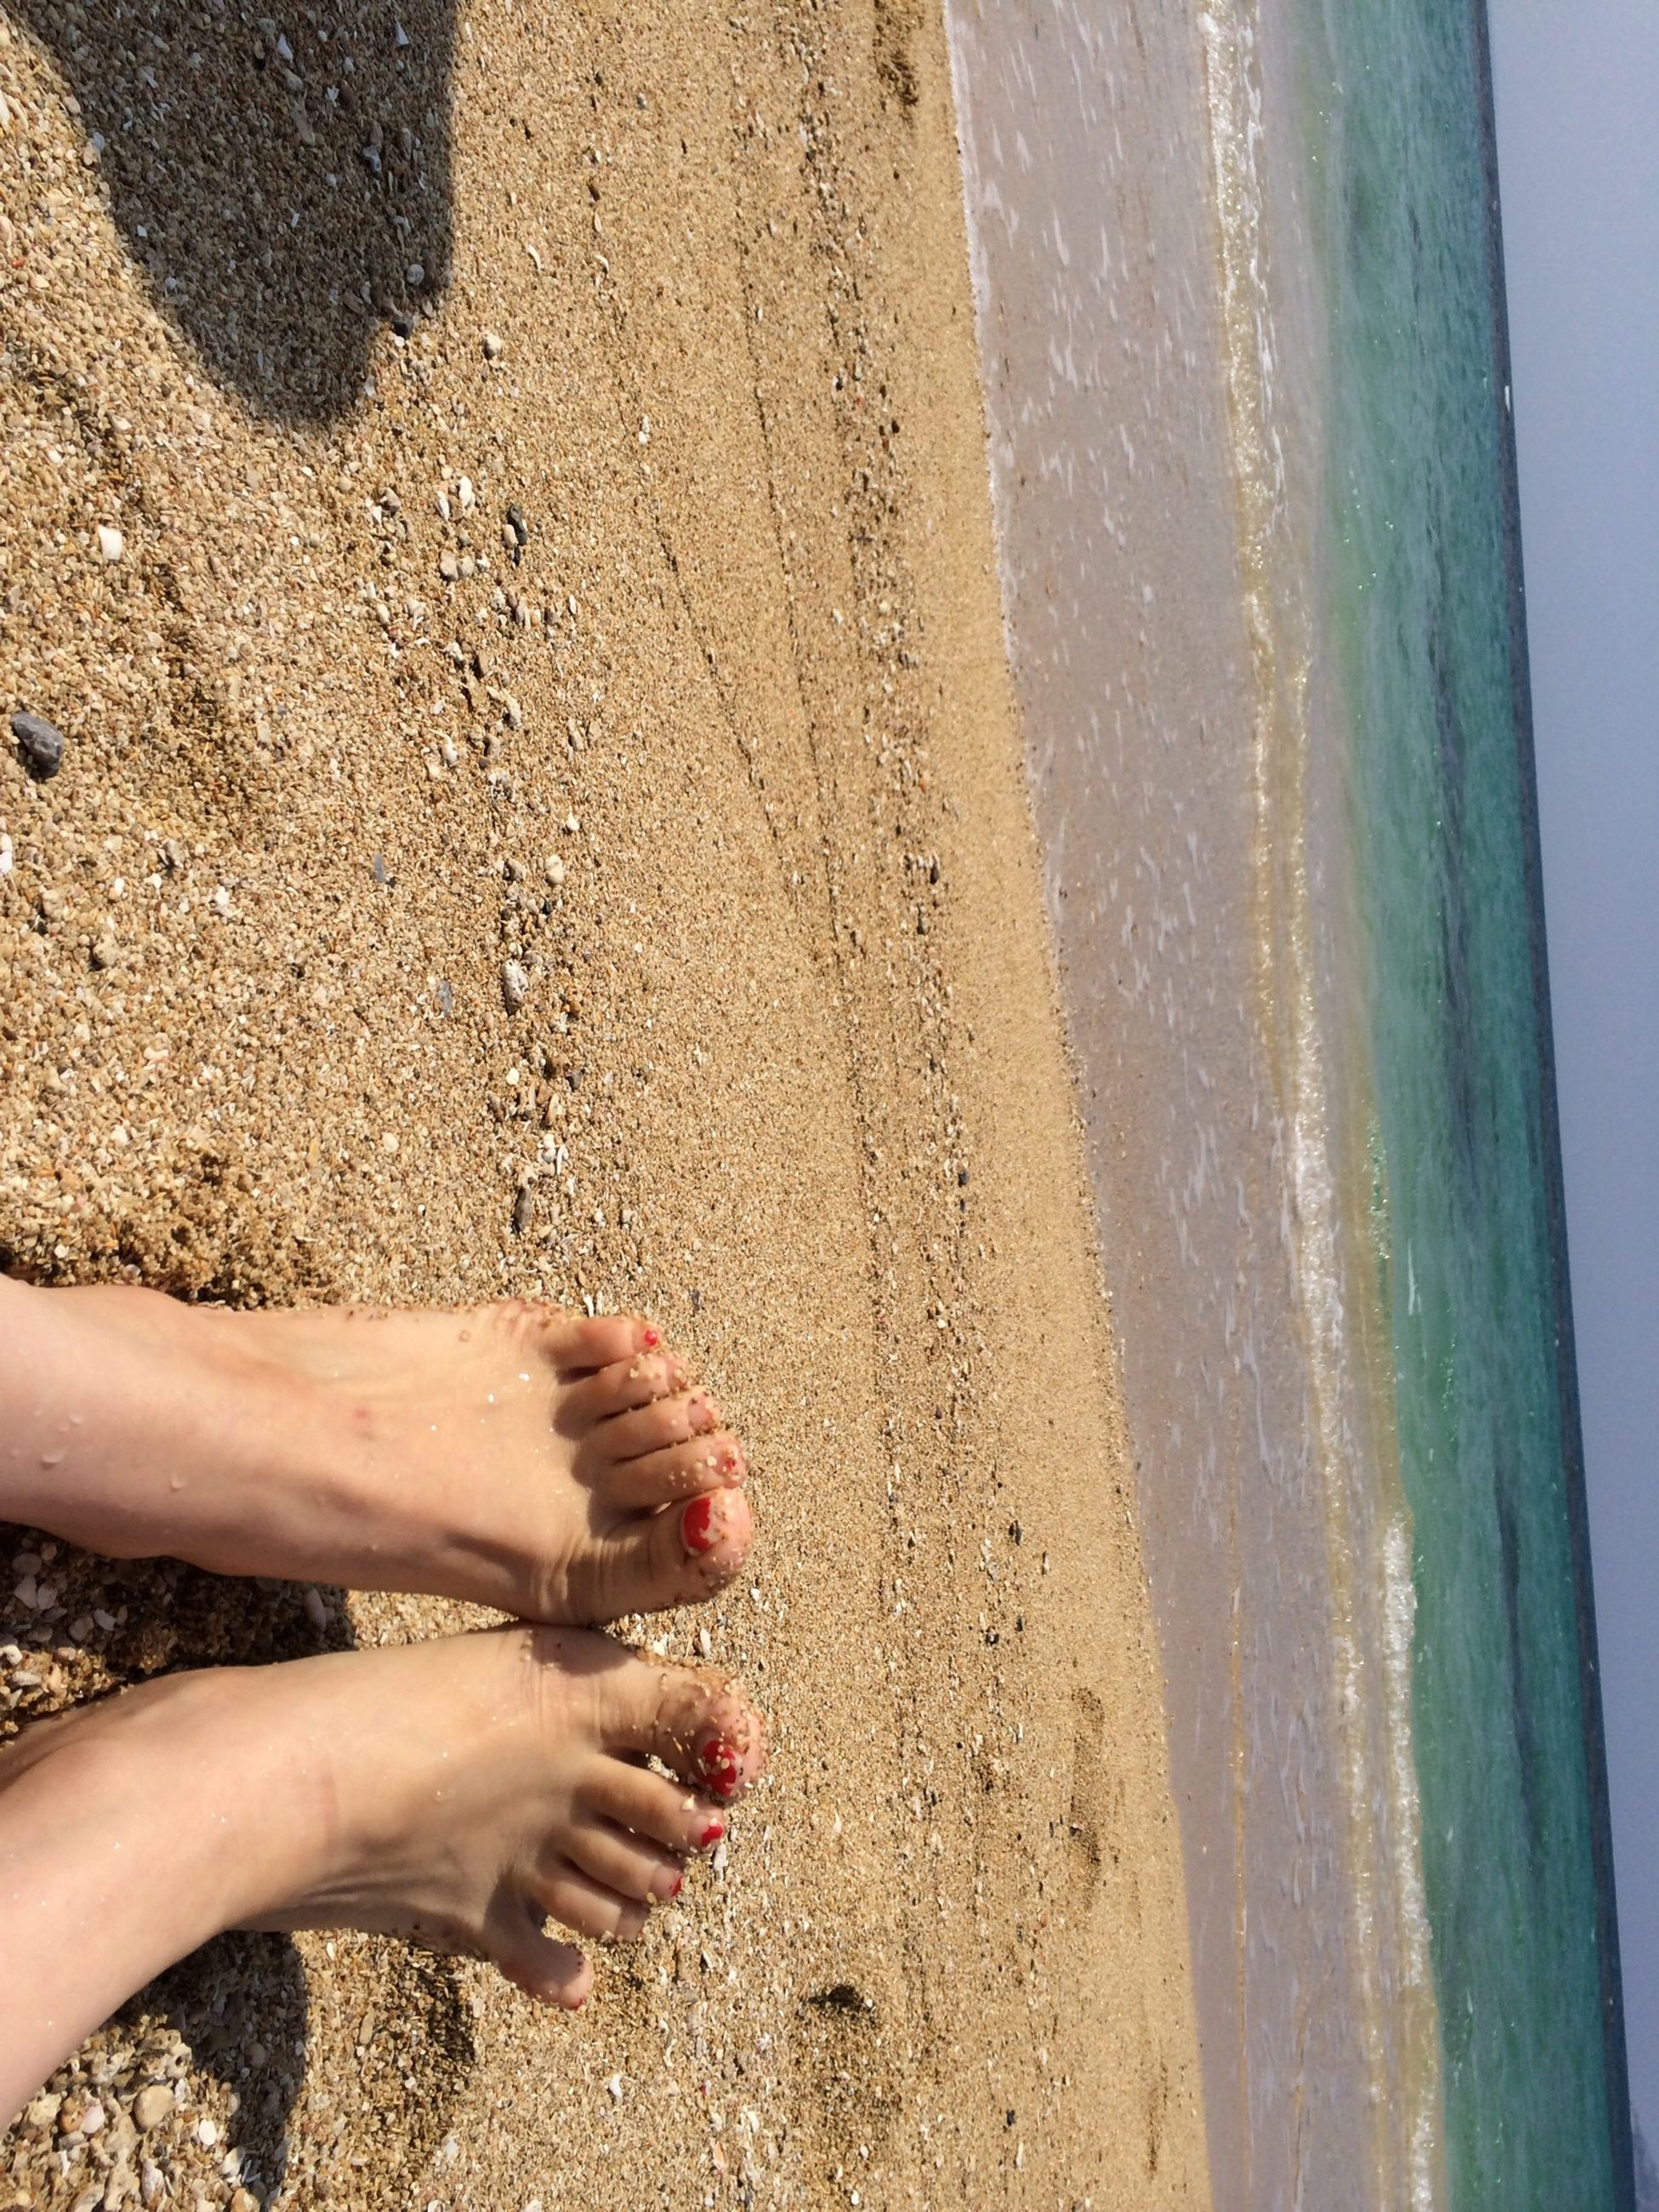 low section, lifestyles, person, beach, leisure activity, barefoot, sand, personal perspective, part of, human foot, sunlight, high angle view, day, outdoors, unrecognizable person